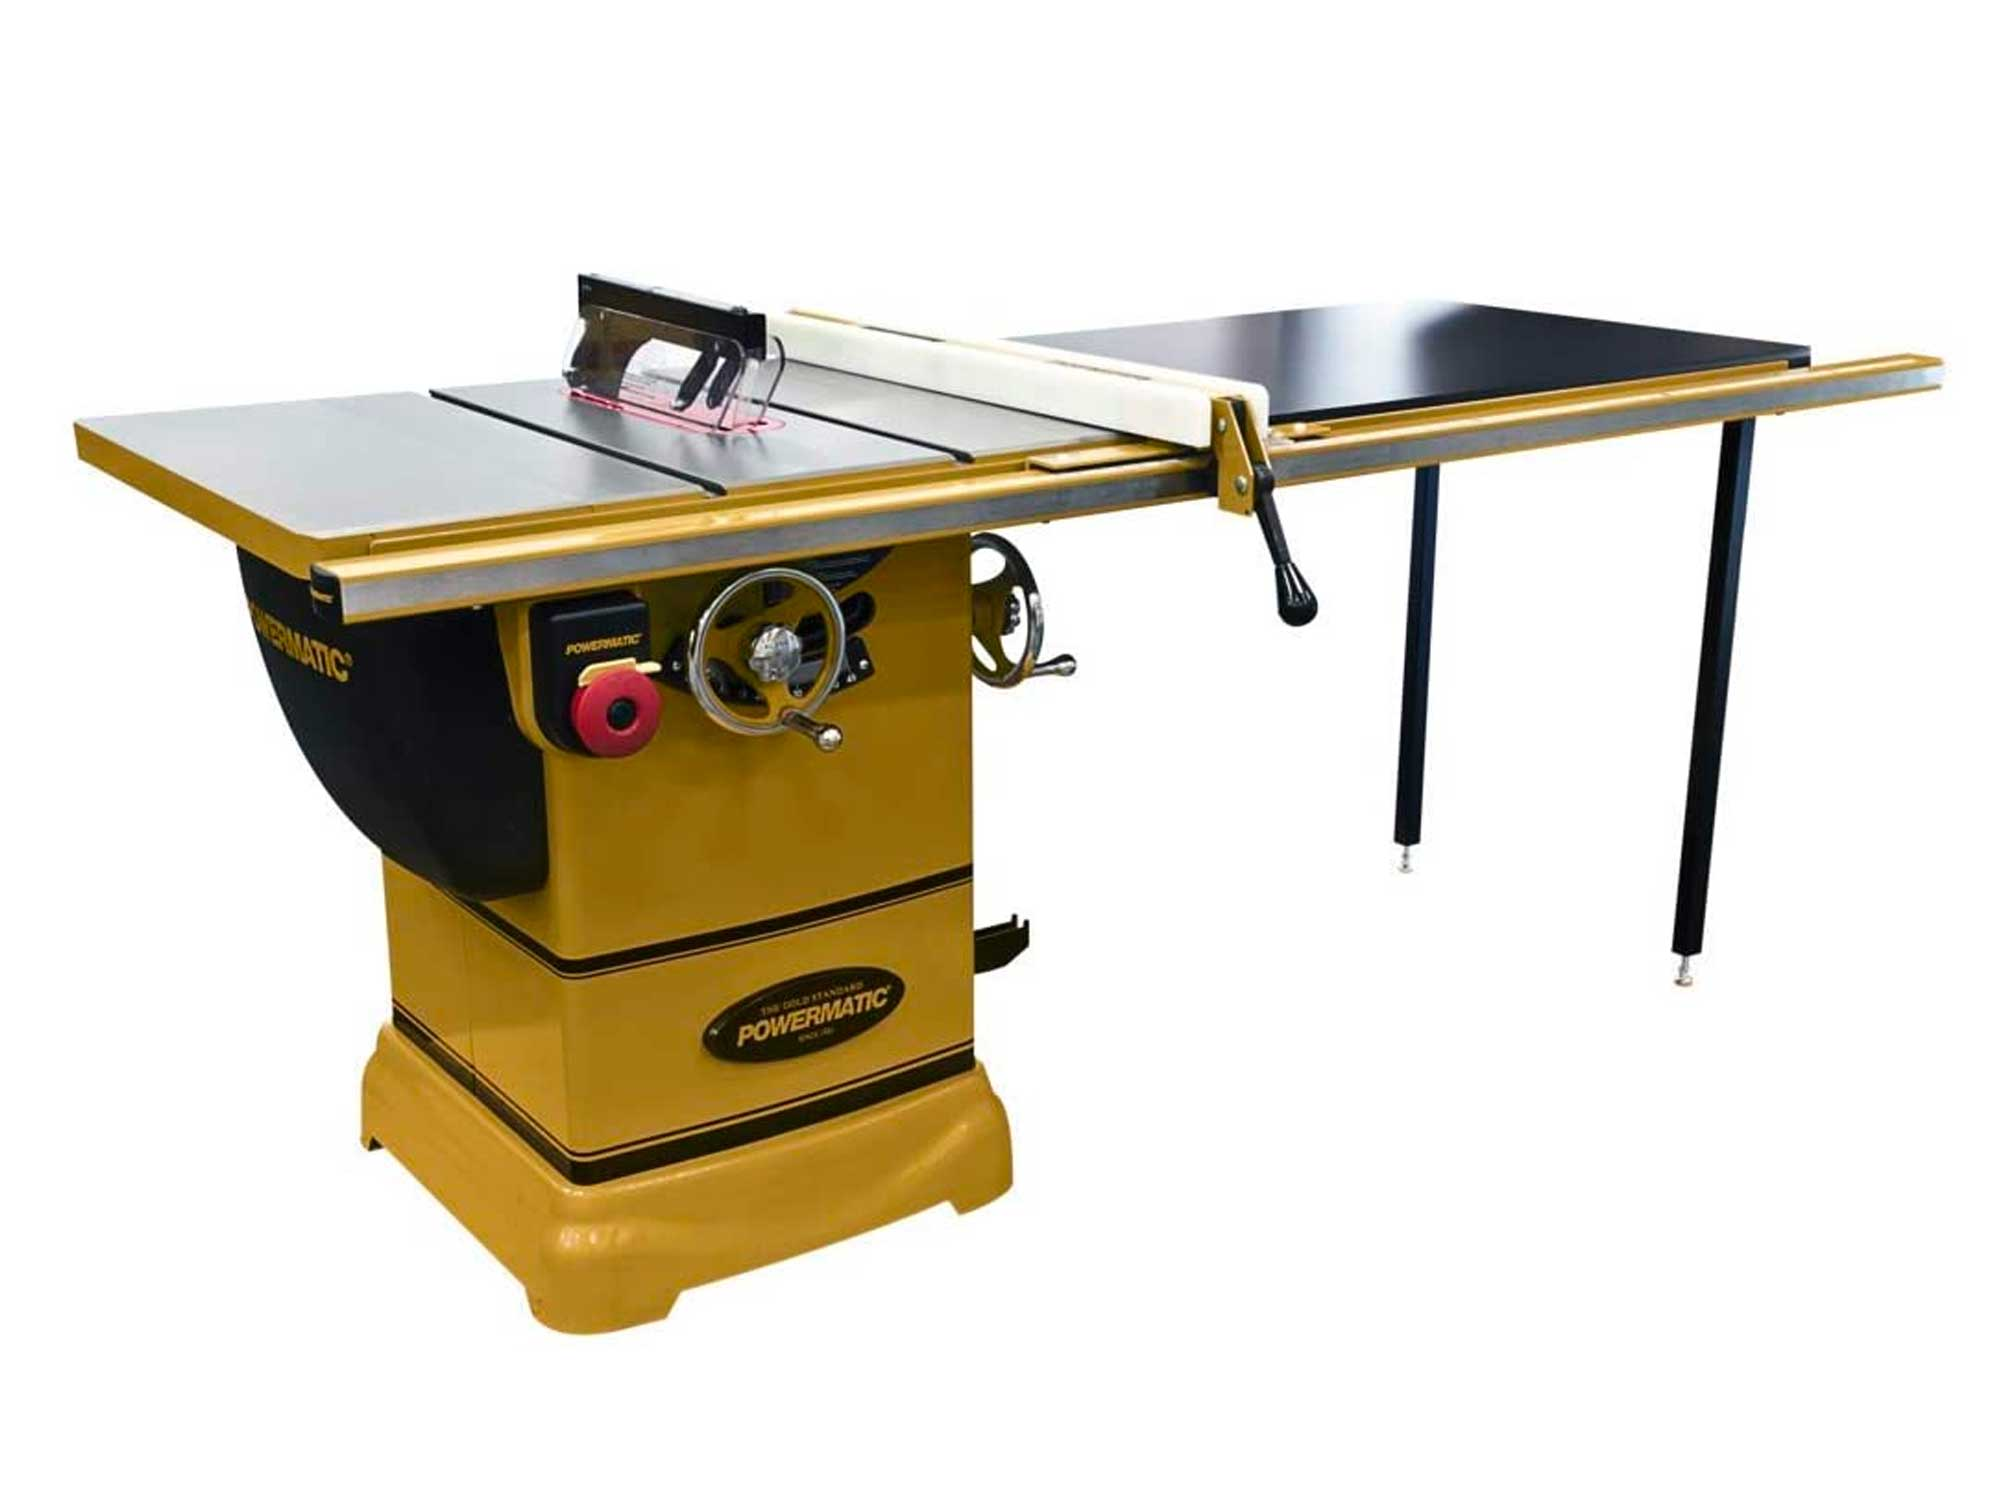 Powermatic Table Saw 50-Inch Fence